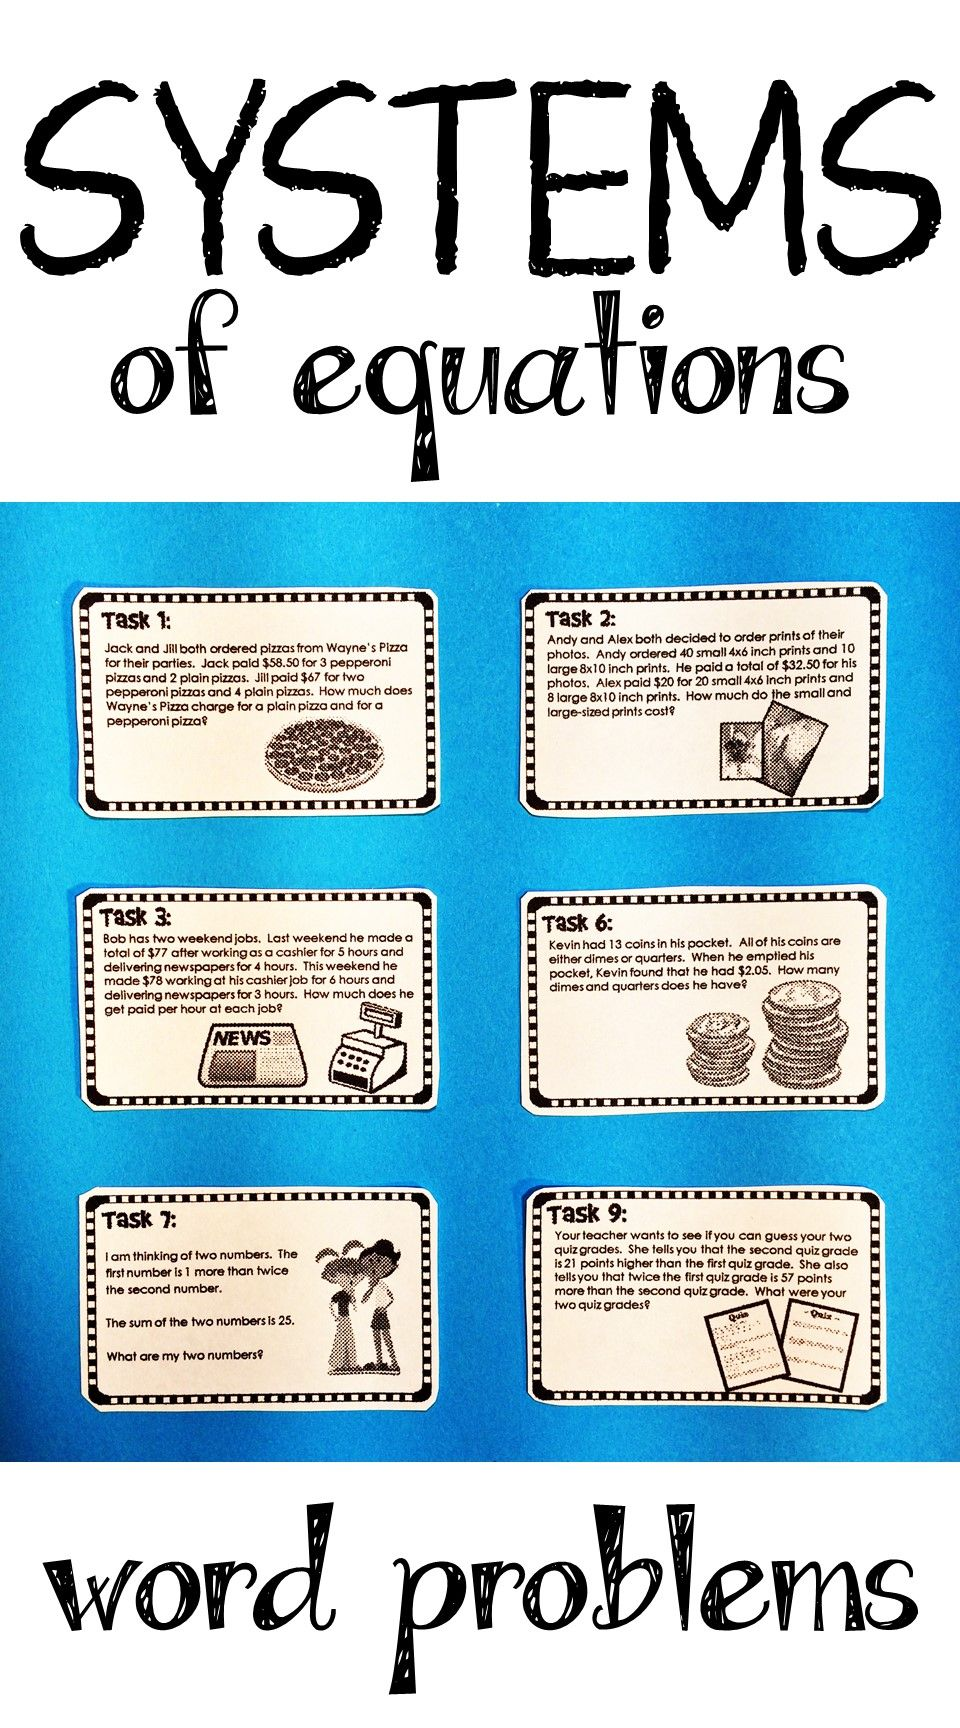 Systems Of Equations Activity Word Problems Print And Digital Word Problems Systems Of Equations Algebra Activities